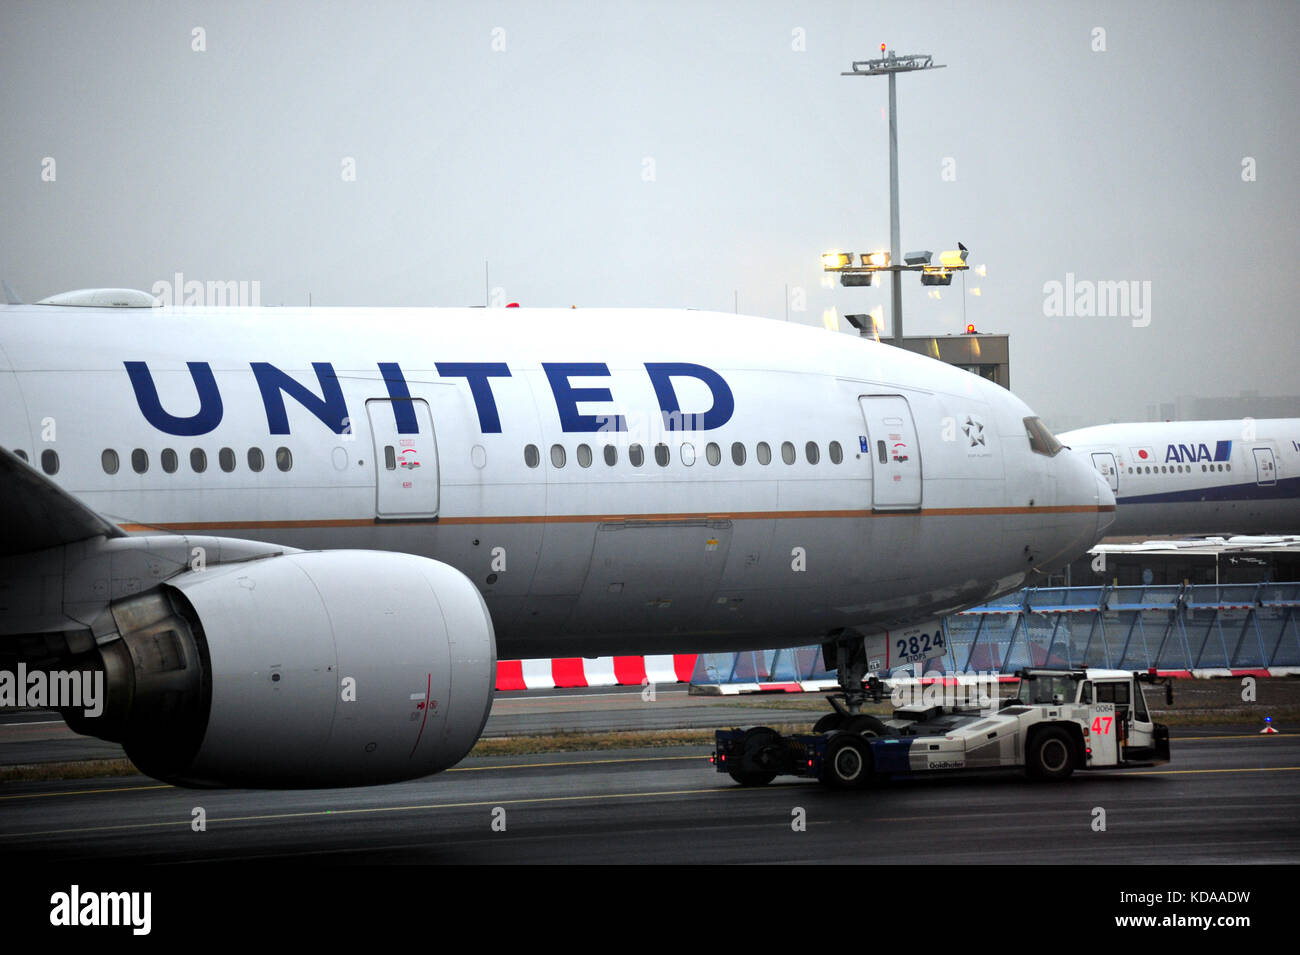 A United Airlines passenger plane taxiing at Frankfurt airport in Germany. - Stock Image